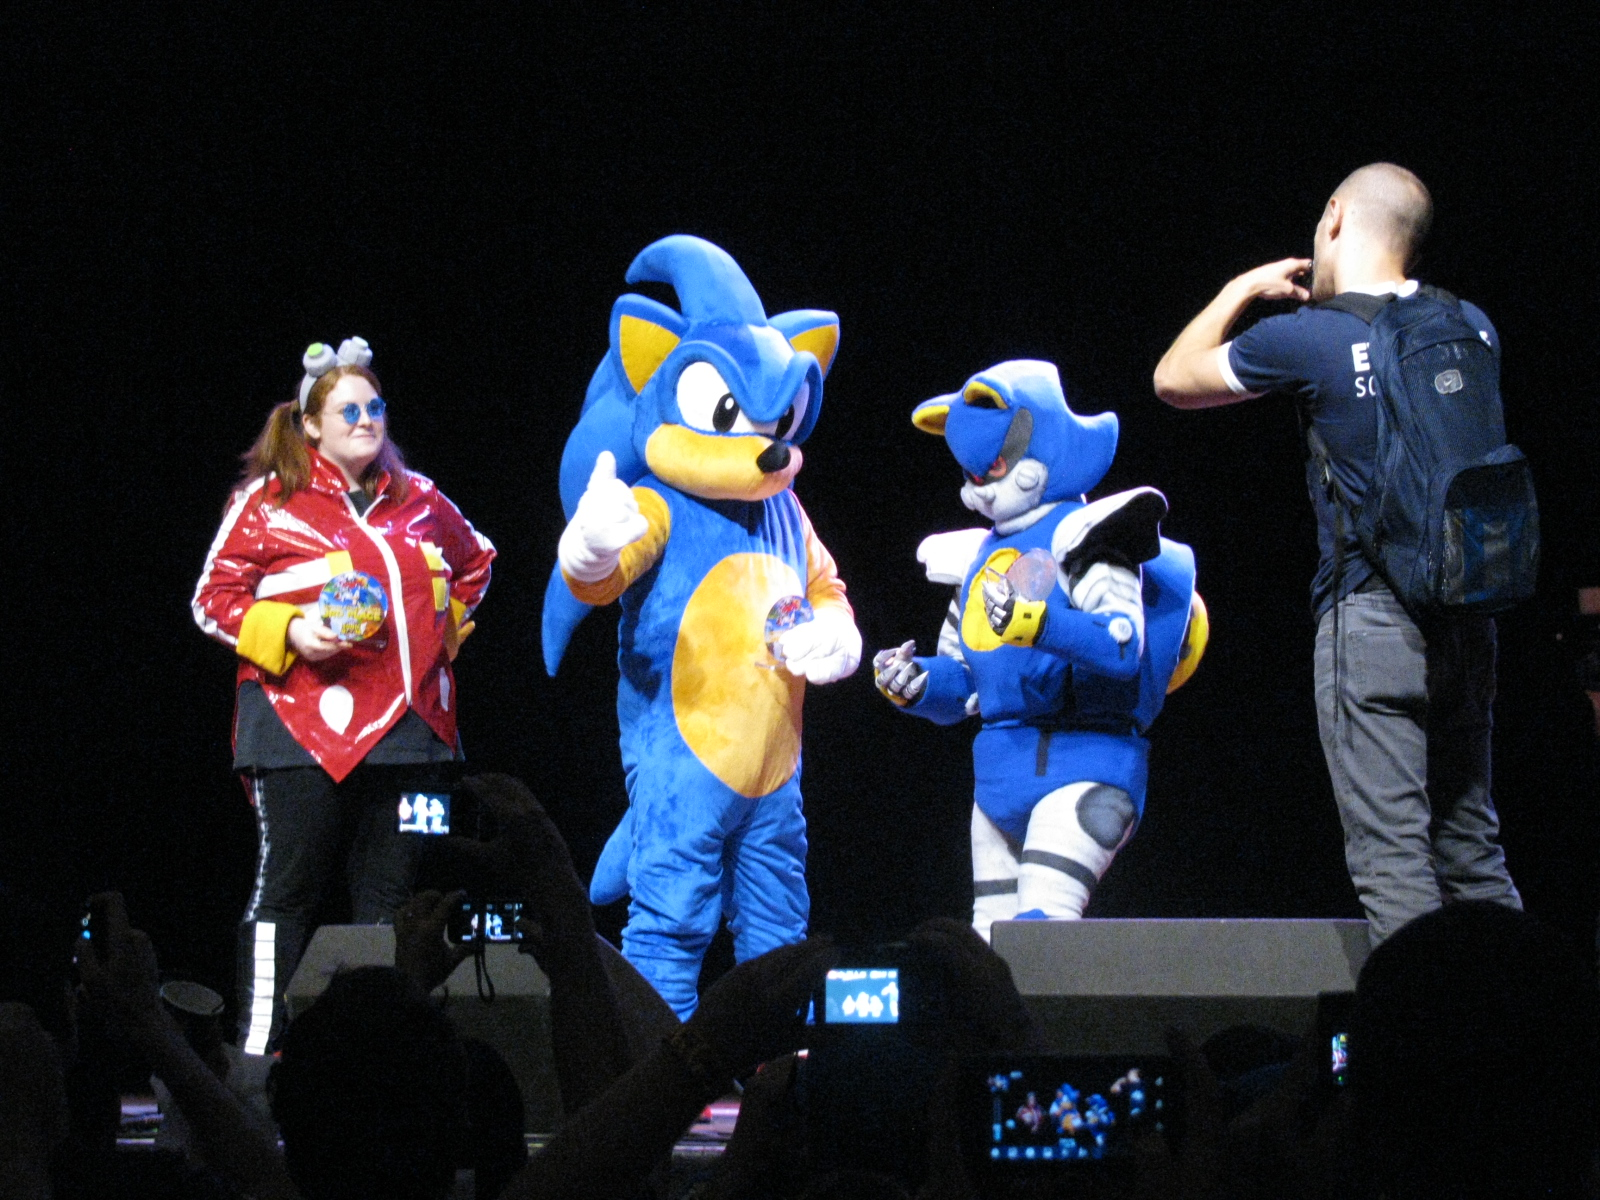 The winners of the costume contest. Doctor Eggman took 3rd, Sonic took 2nd, and Metal Sonic took 1st.